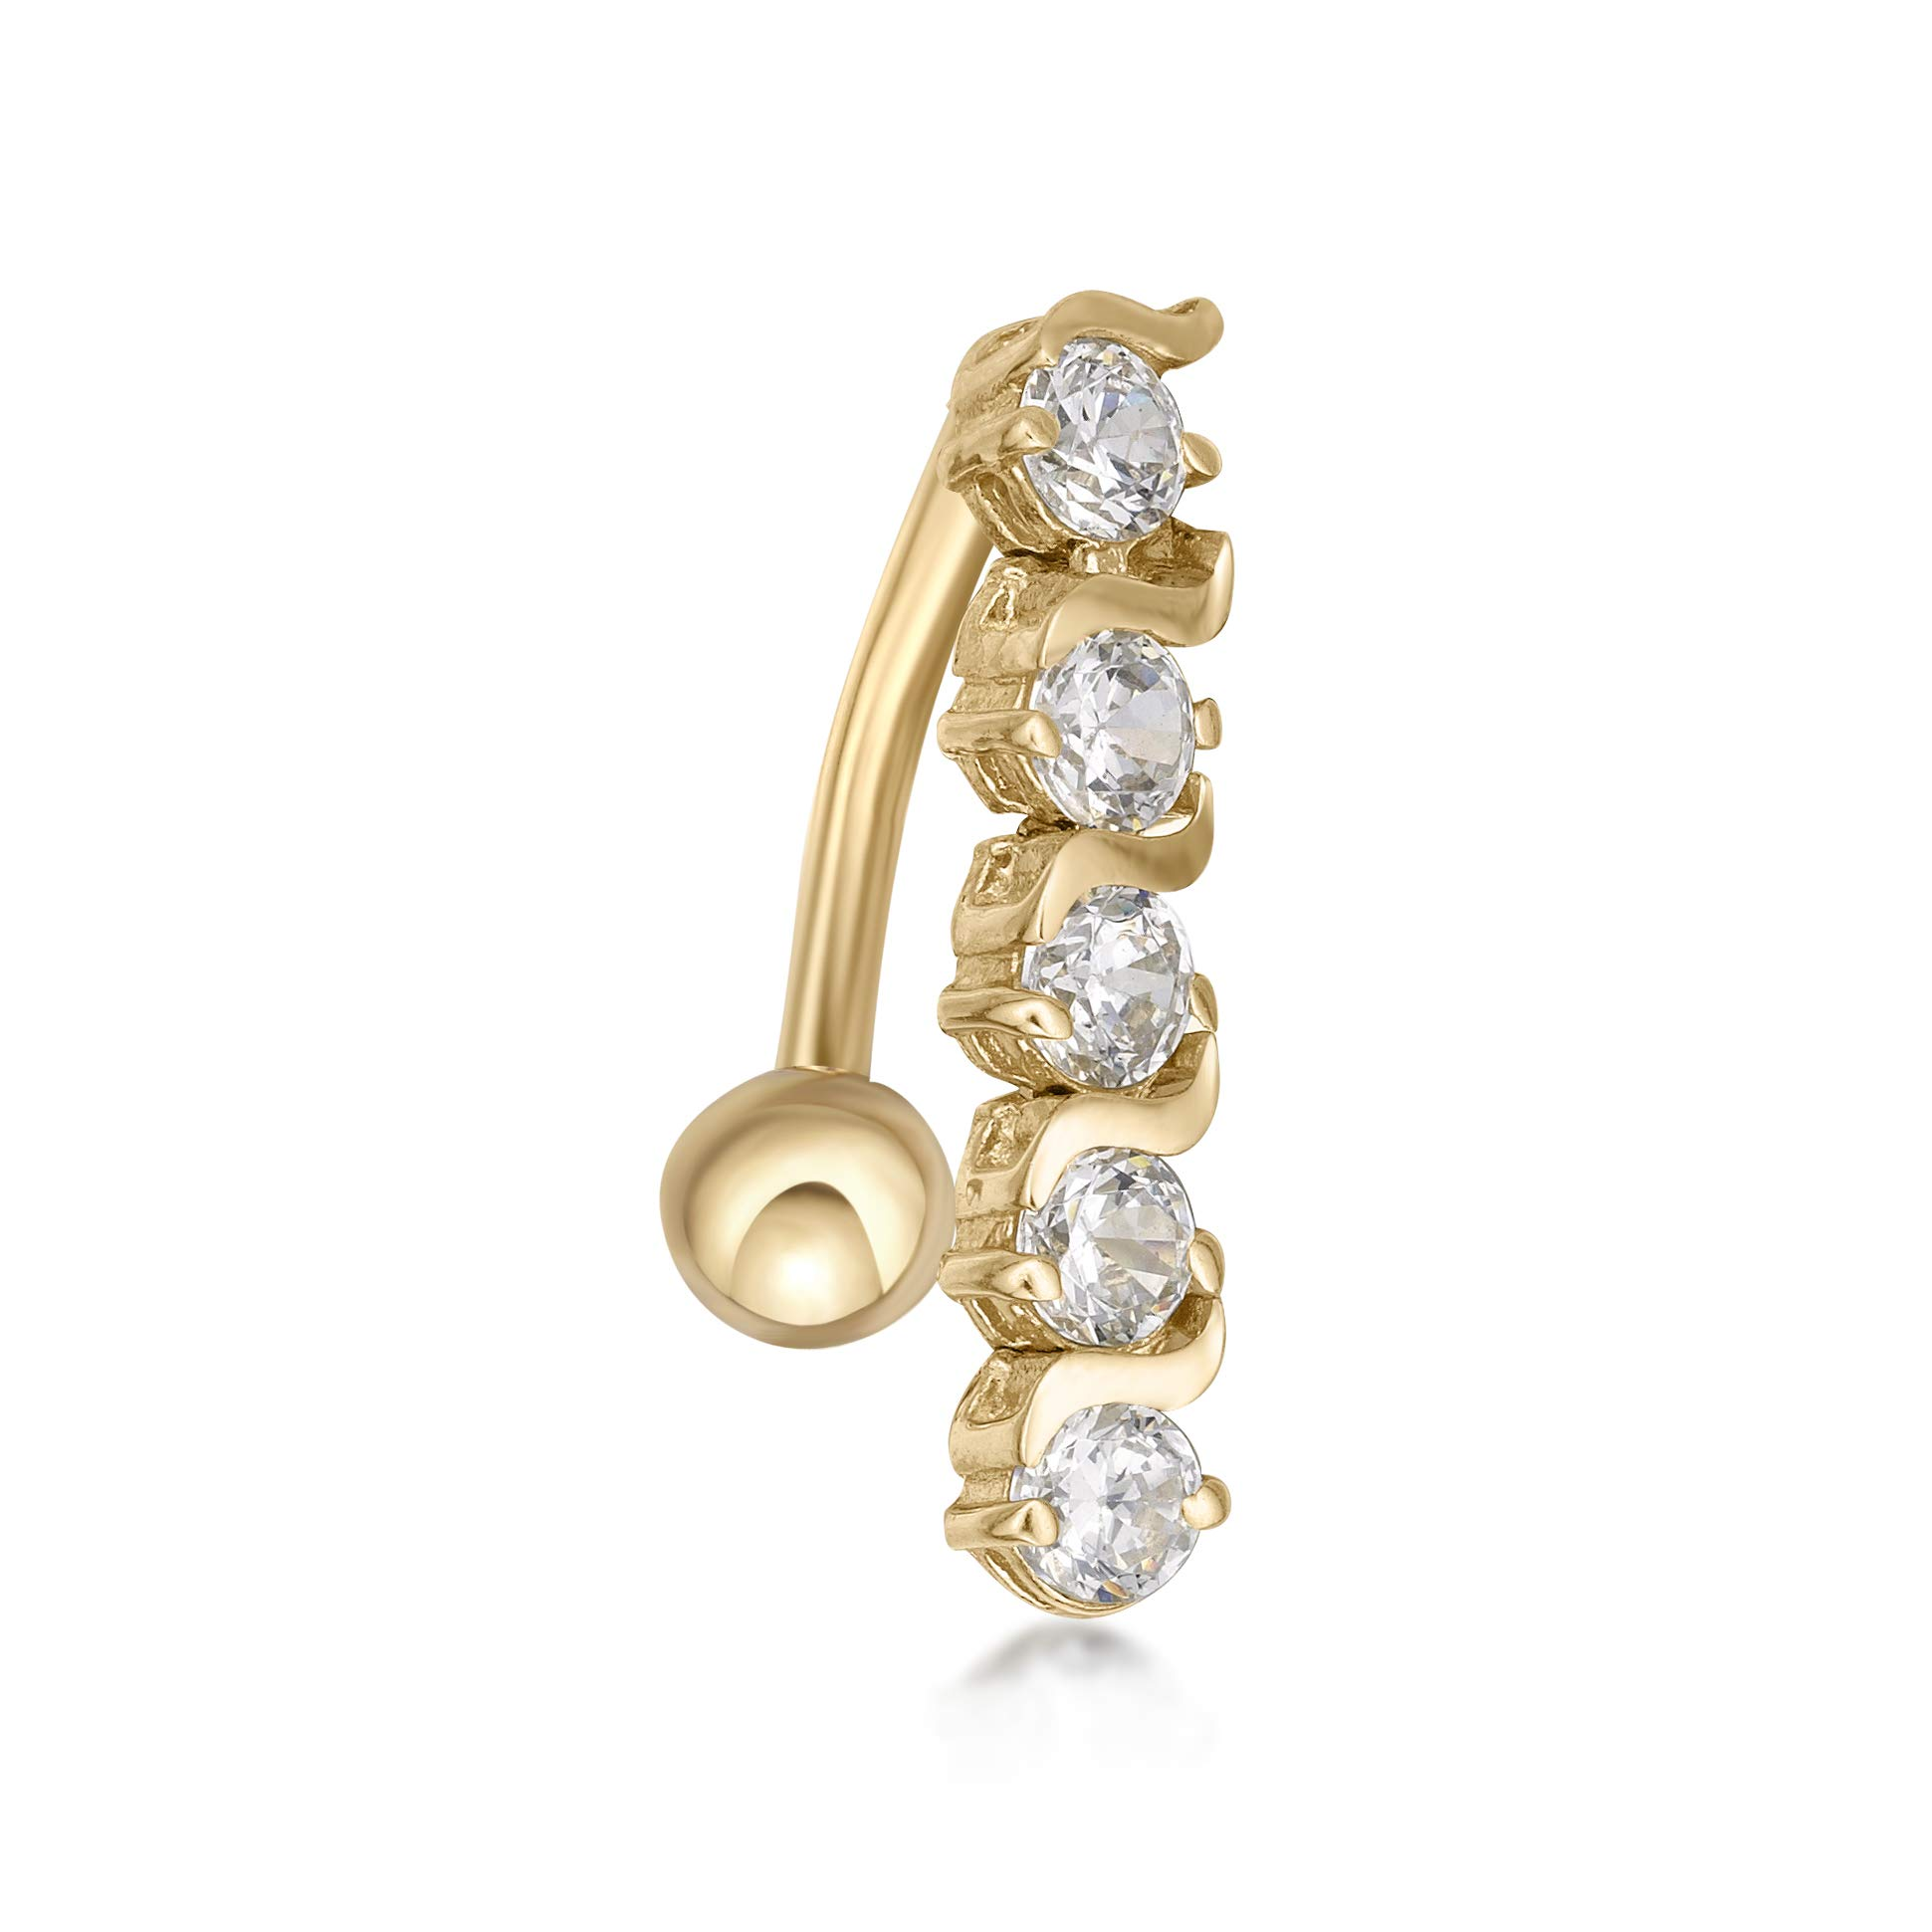 Lavari - 10K Yellow Gold Top Mount White Cubic Zirconia Belly Button Ring 16 Gauge 12MM by Lavari Jewelers